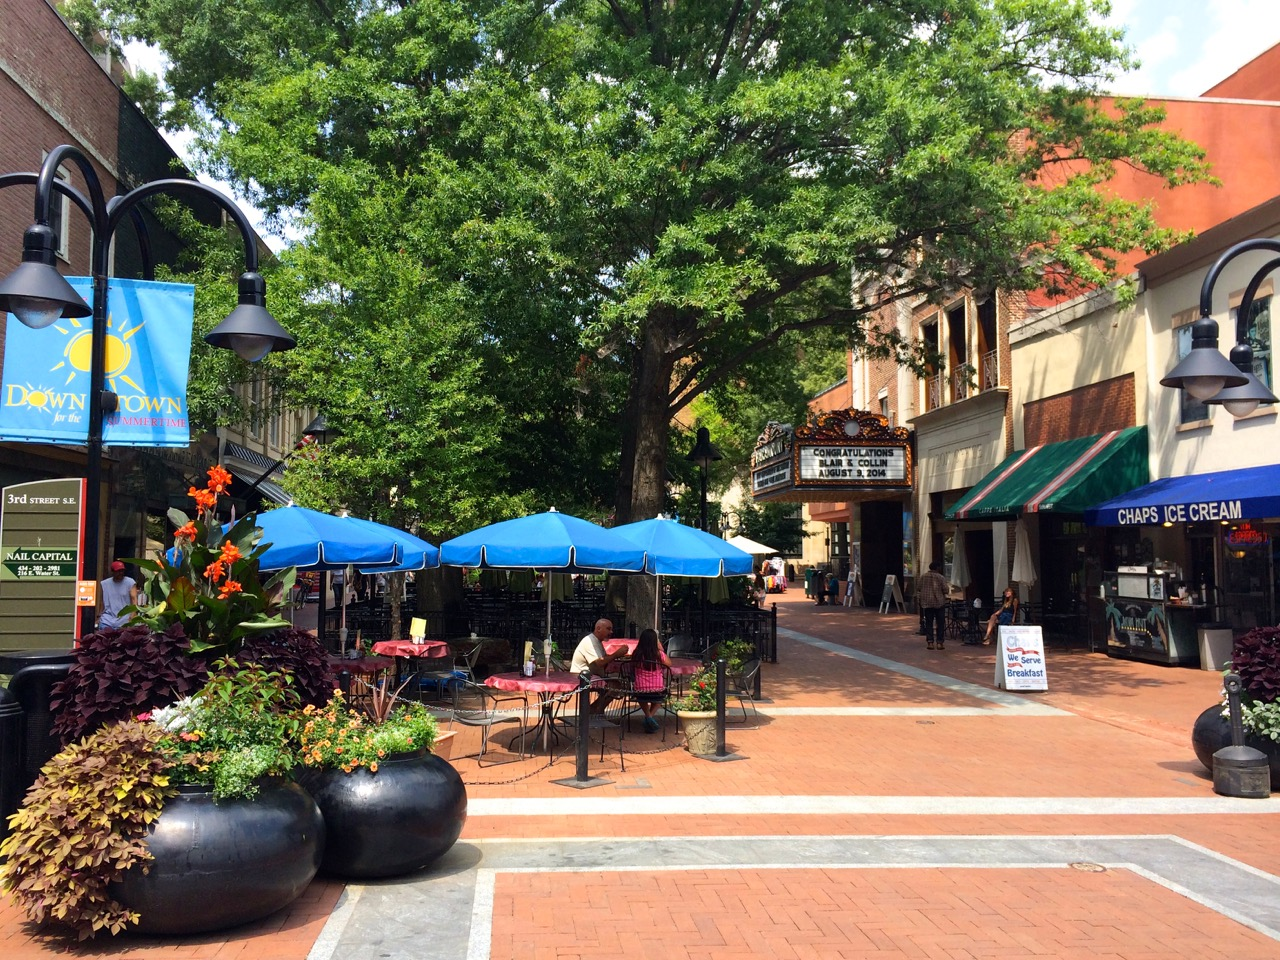 Charlottesville-VA-downtown-IthacaBuilds-08091433